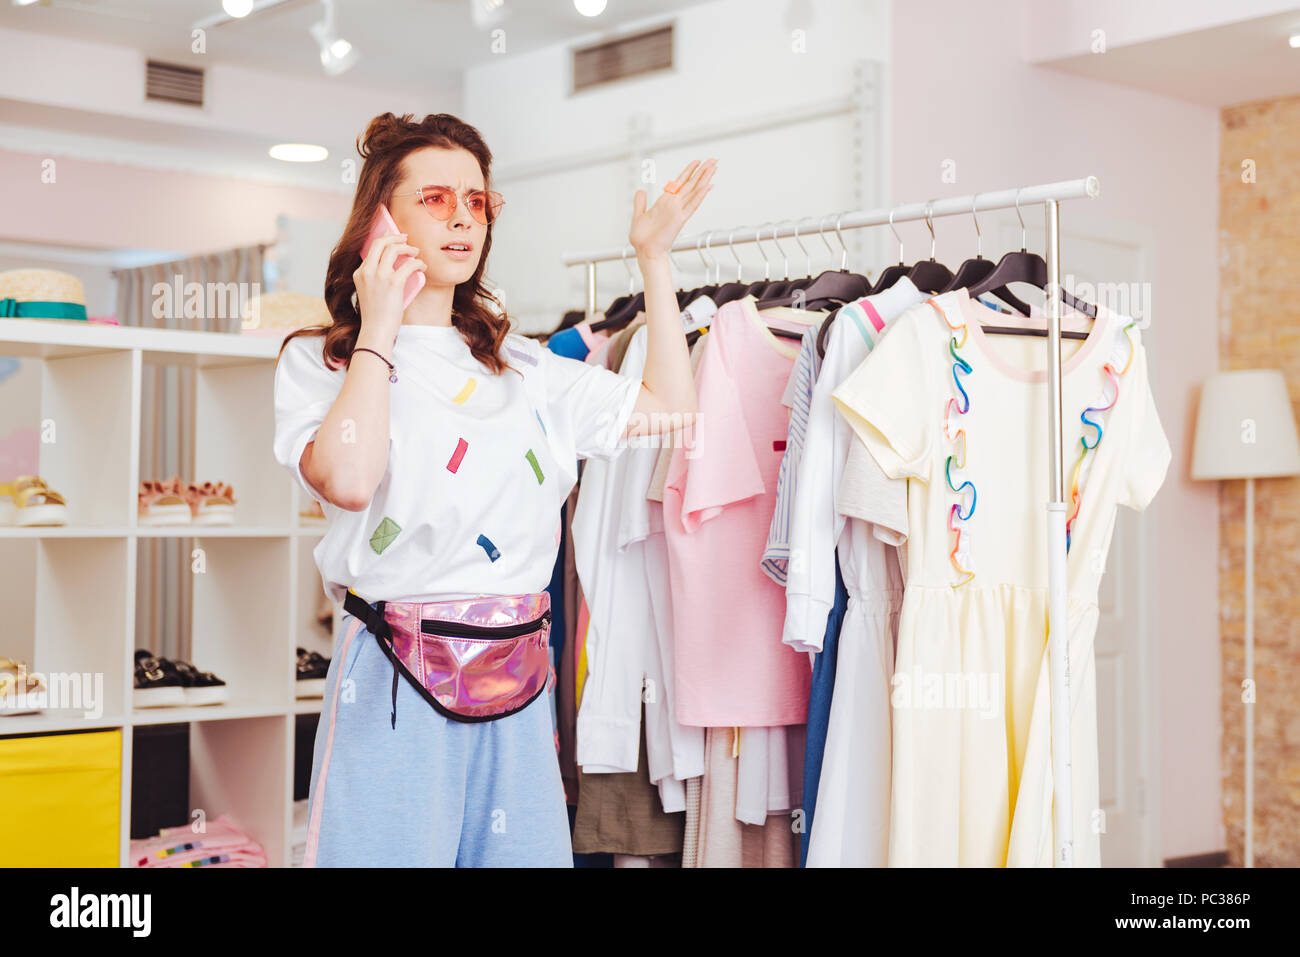 Arguing with man. Emotional woman arguing with her man while speaking on the phone standing in showroom - Stock Image